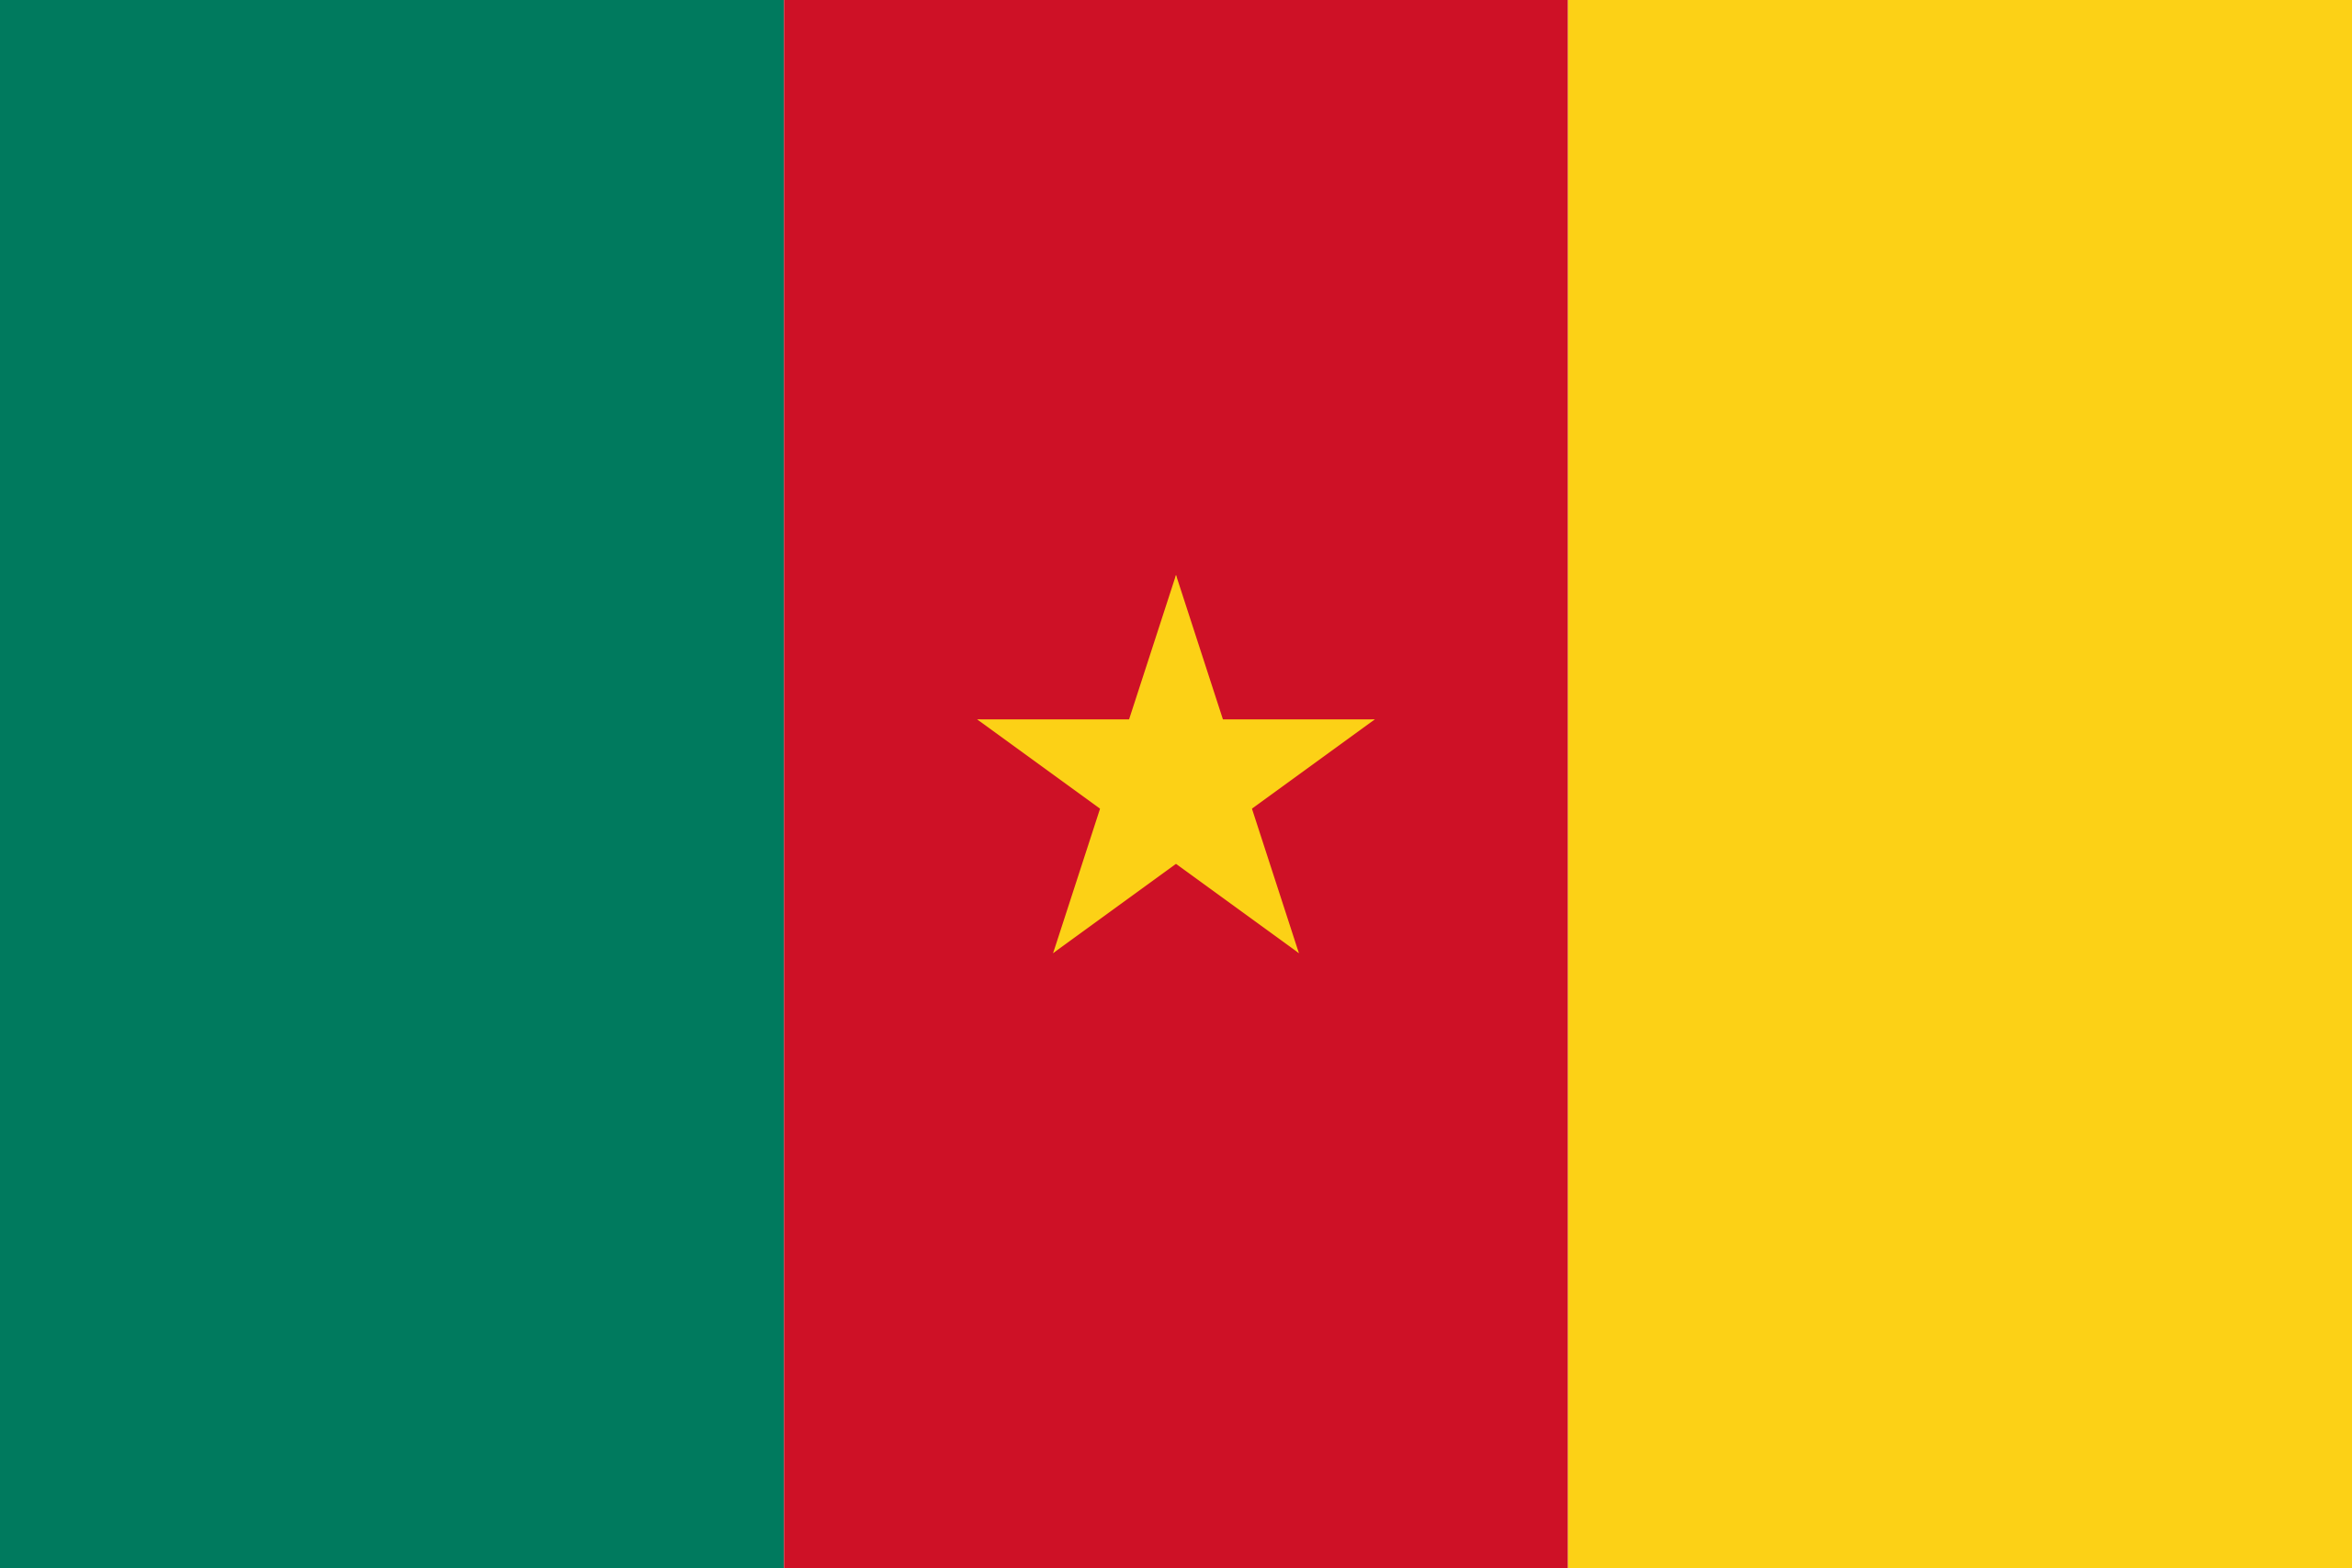 Embassy of the Republic of Cameroon